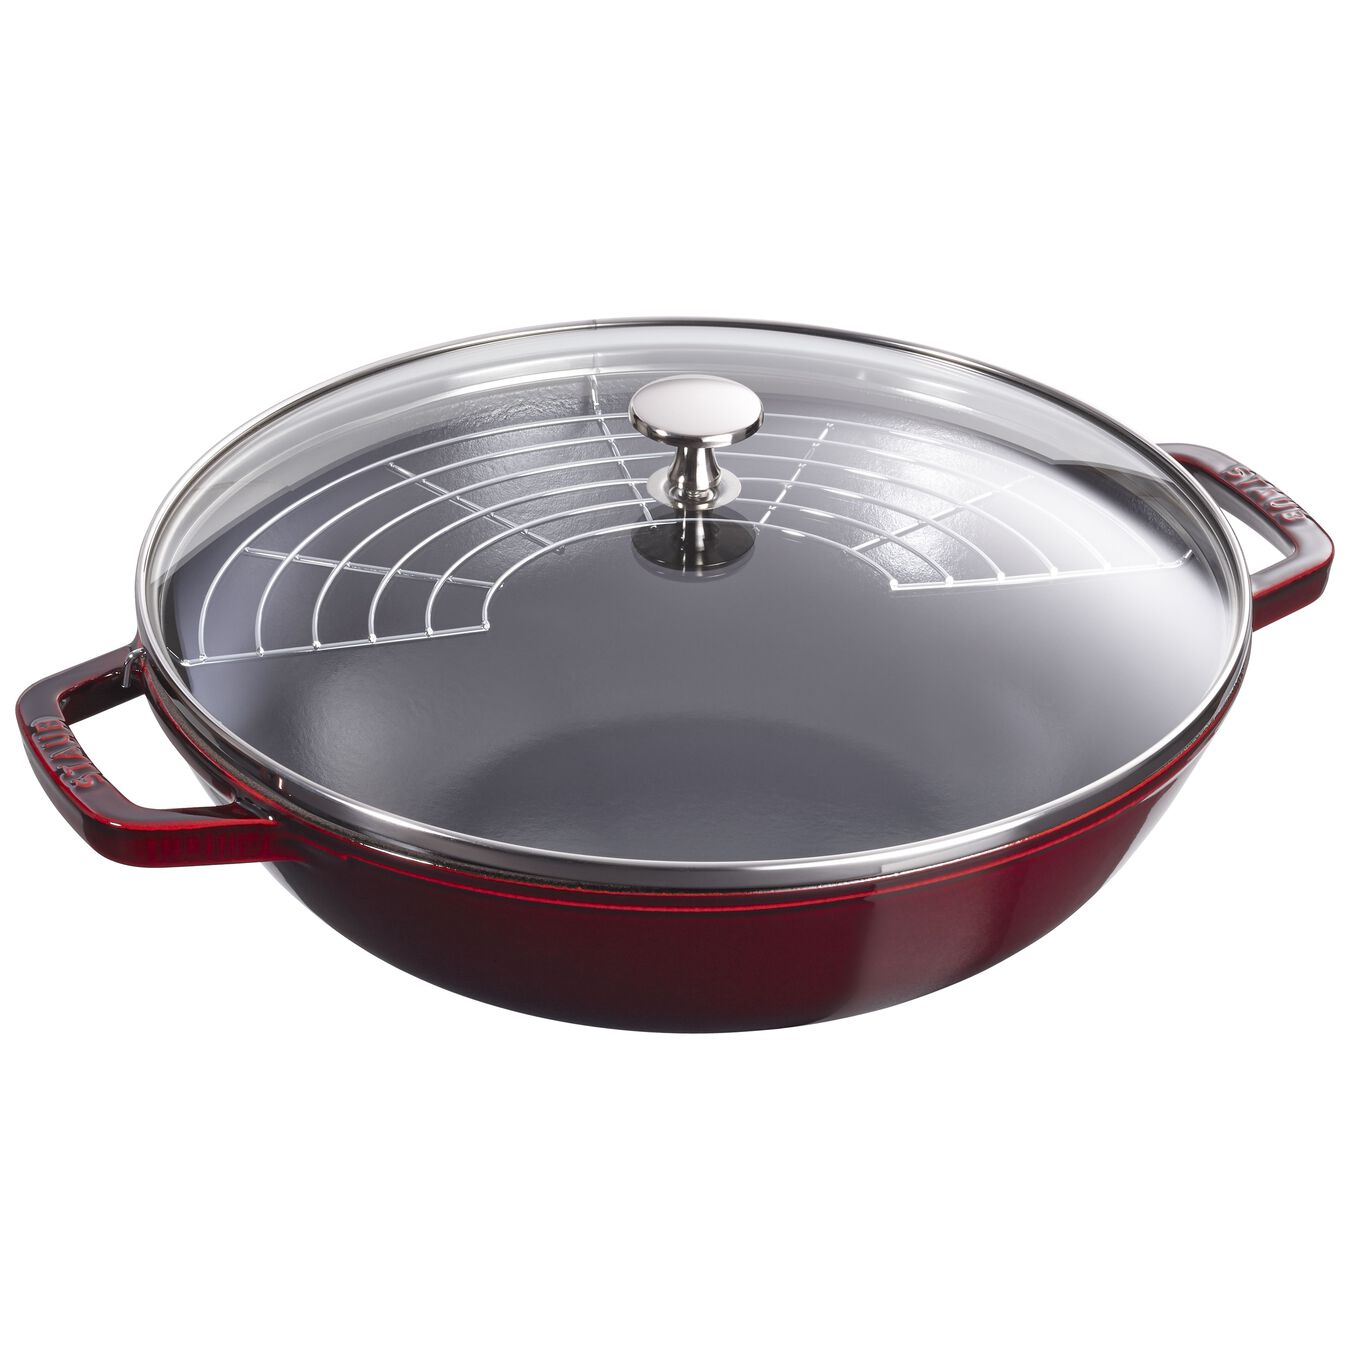 4.75 qt, Wok with glass lid, grenadine - Visual Imperfections,,large 2